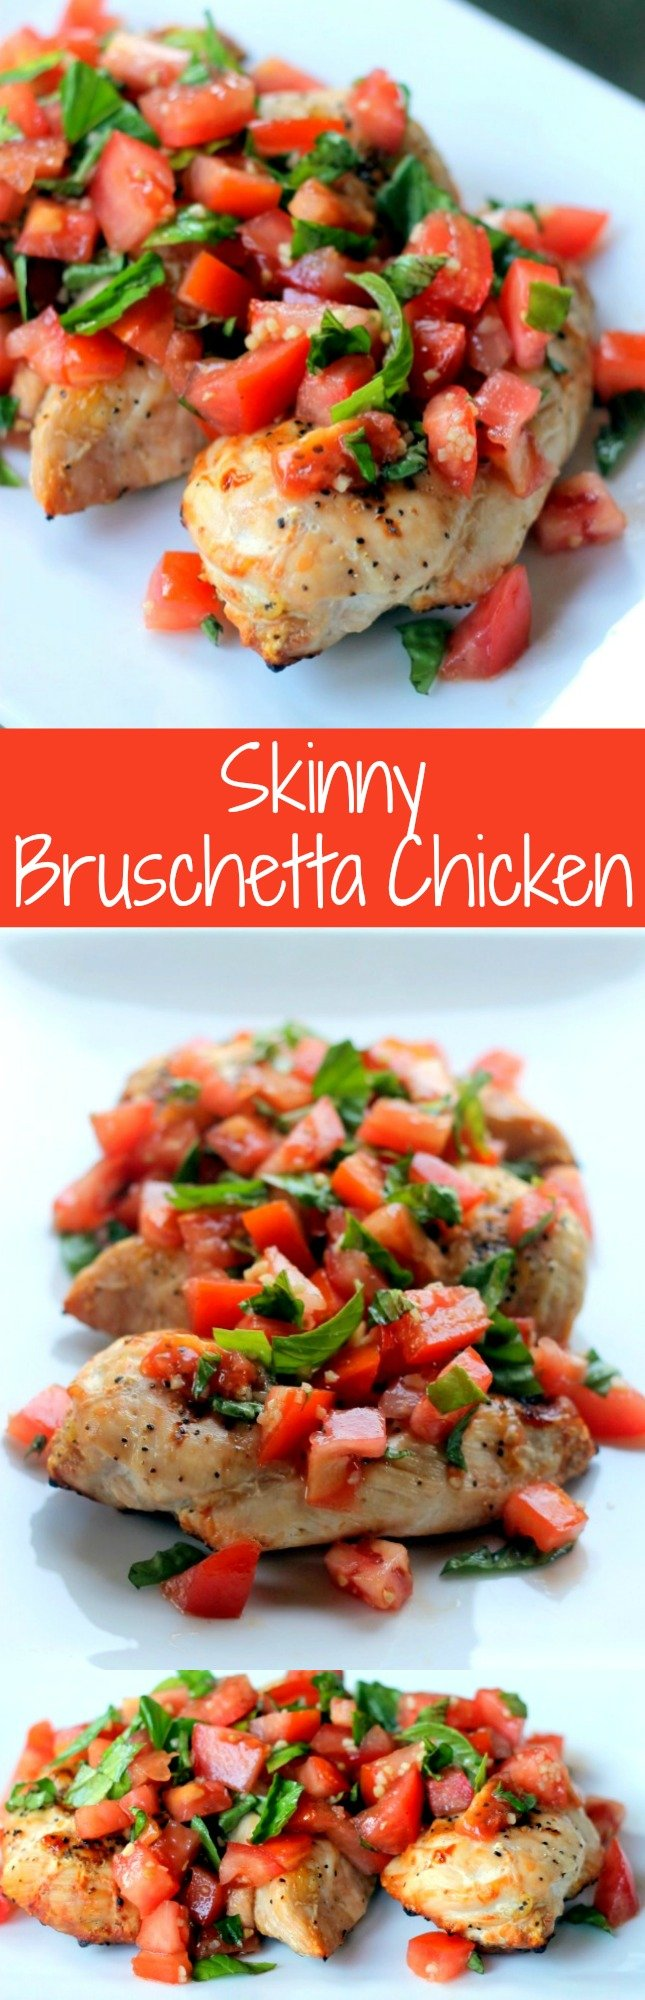 Skinny Bruschetta Chicken has delicious juicy grilled chicken topped with a fresh tomato bruschetta! With only 176 calories per servings, it's the perfect healthy dinner!